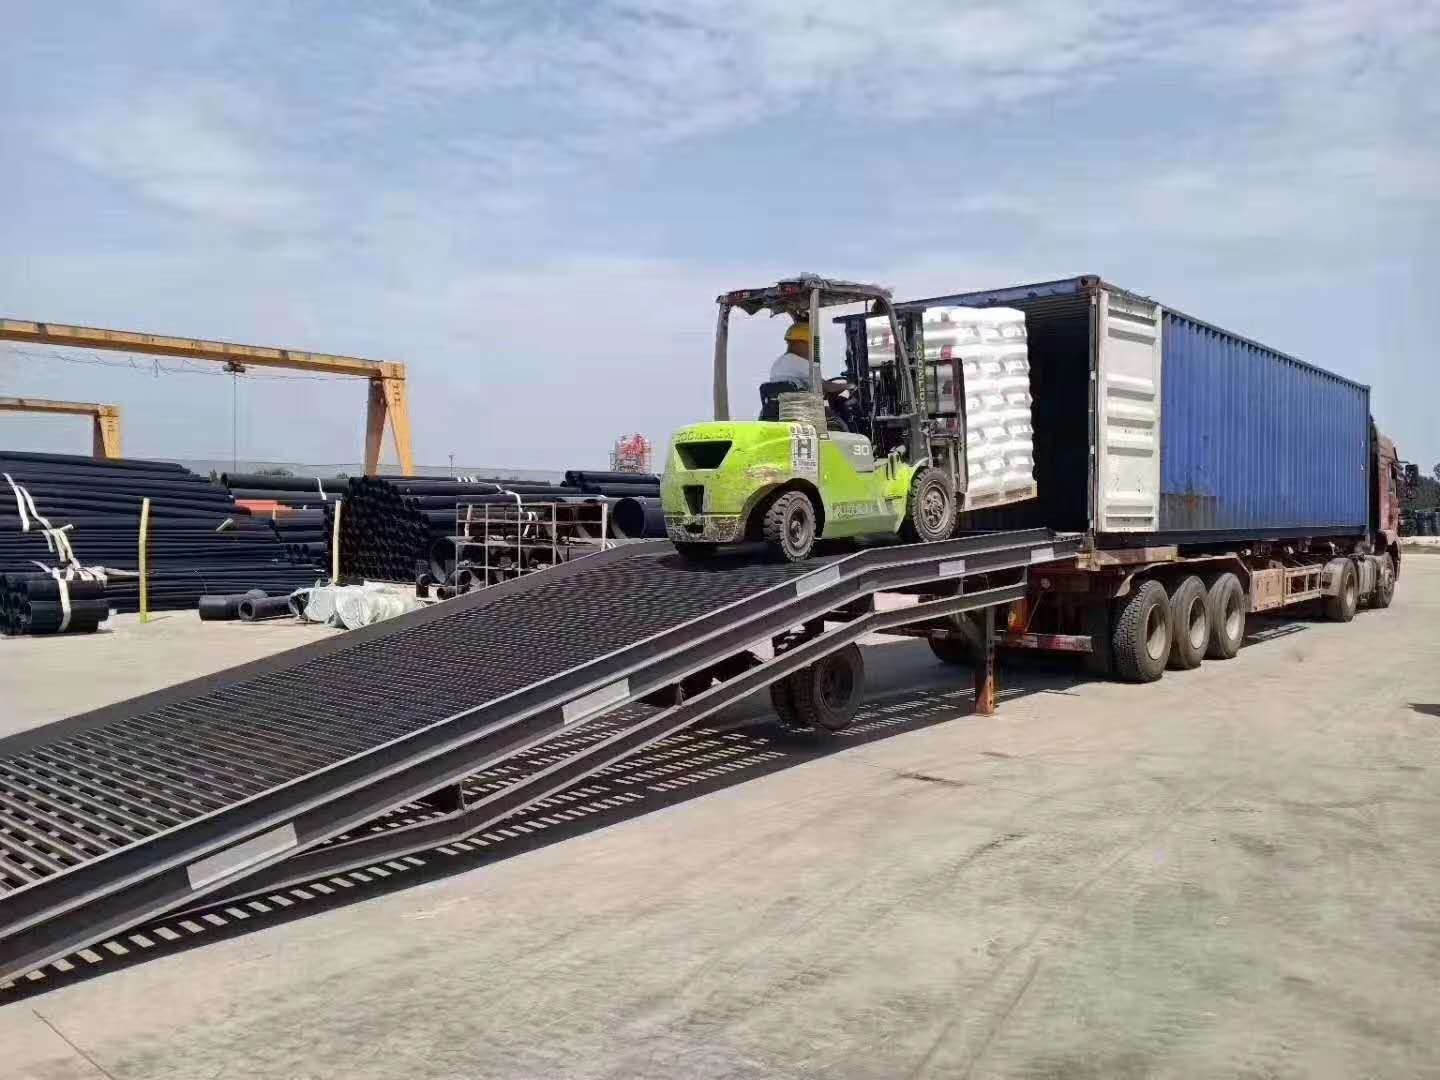 New HDPE Raw Materials Arrive